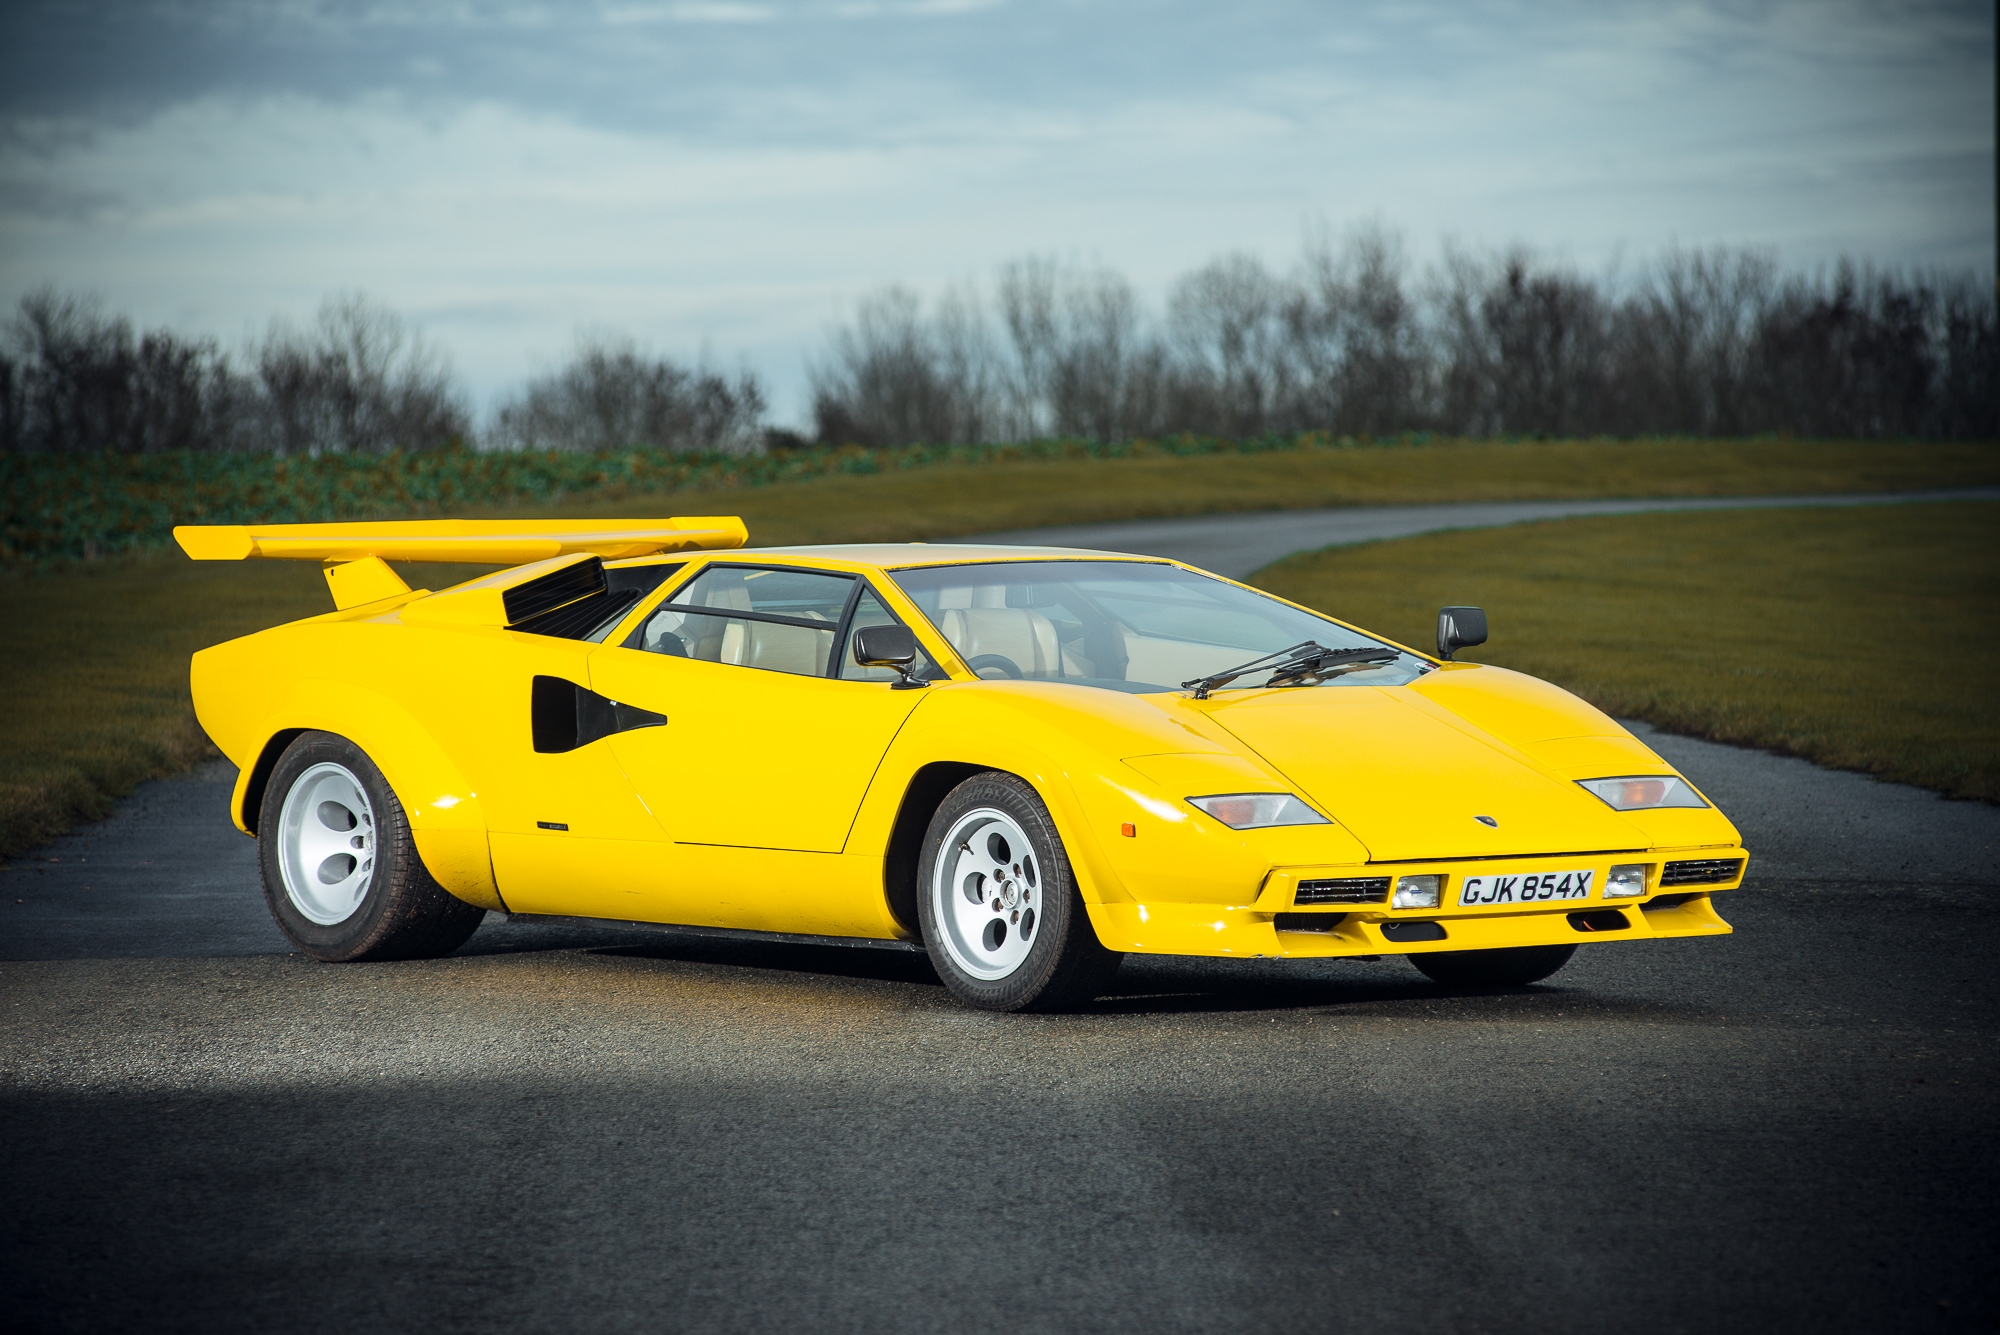 An Incredibly Rare 1981 Lamborghini Countach Could Be